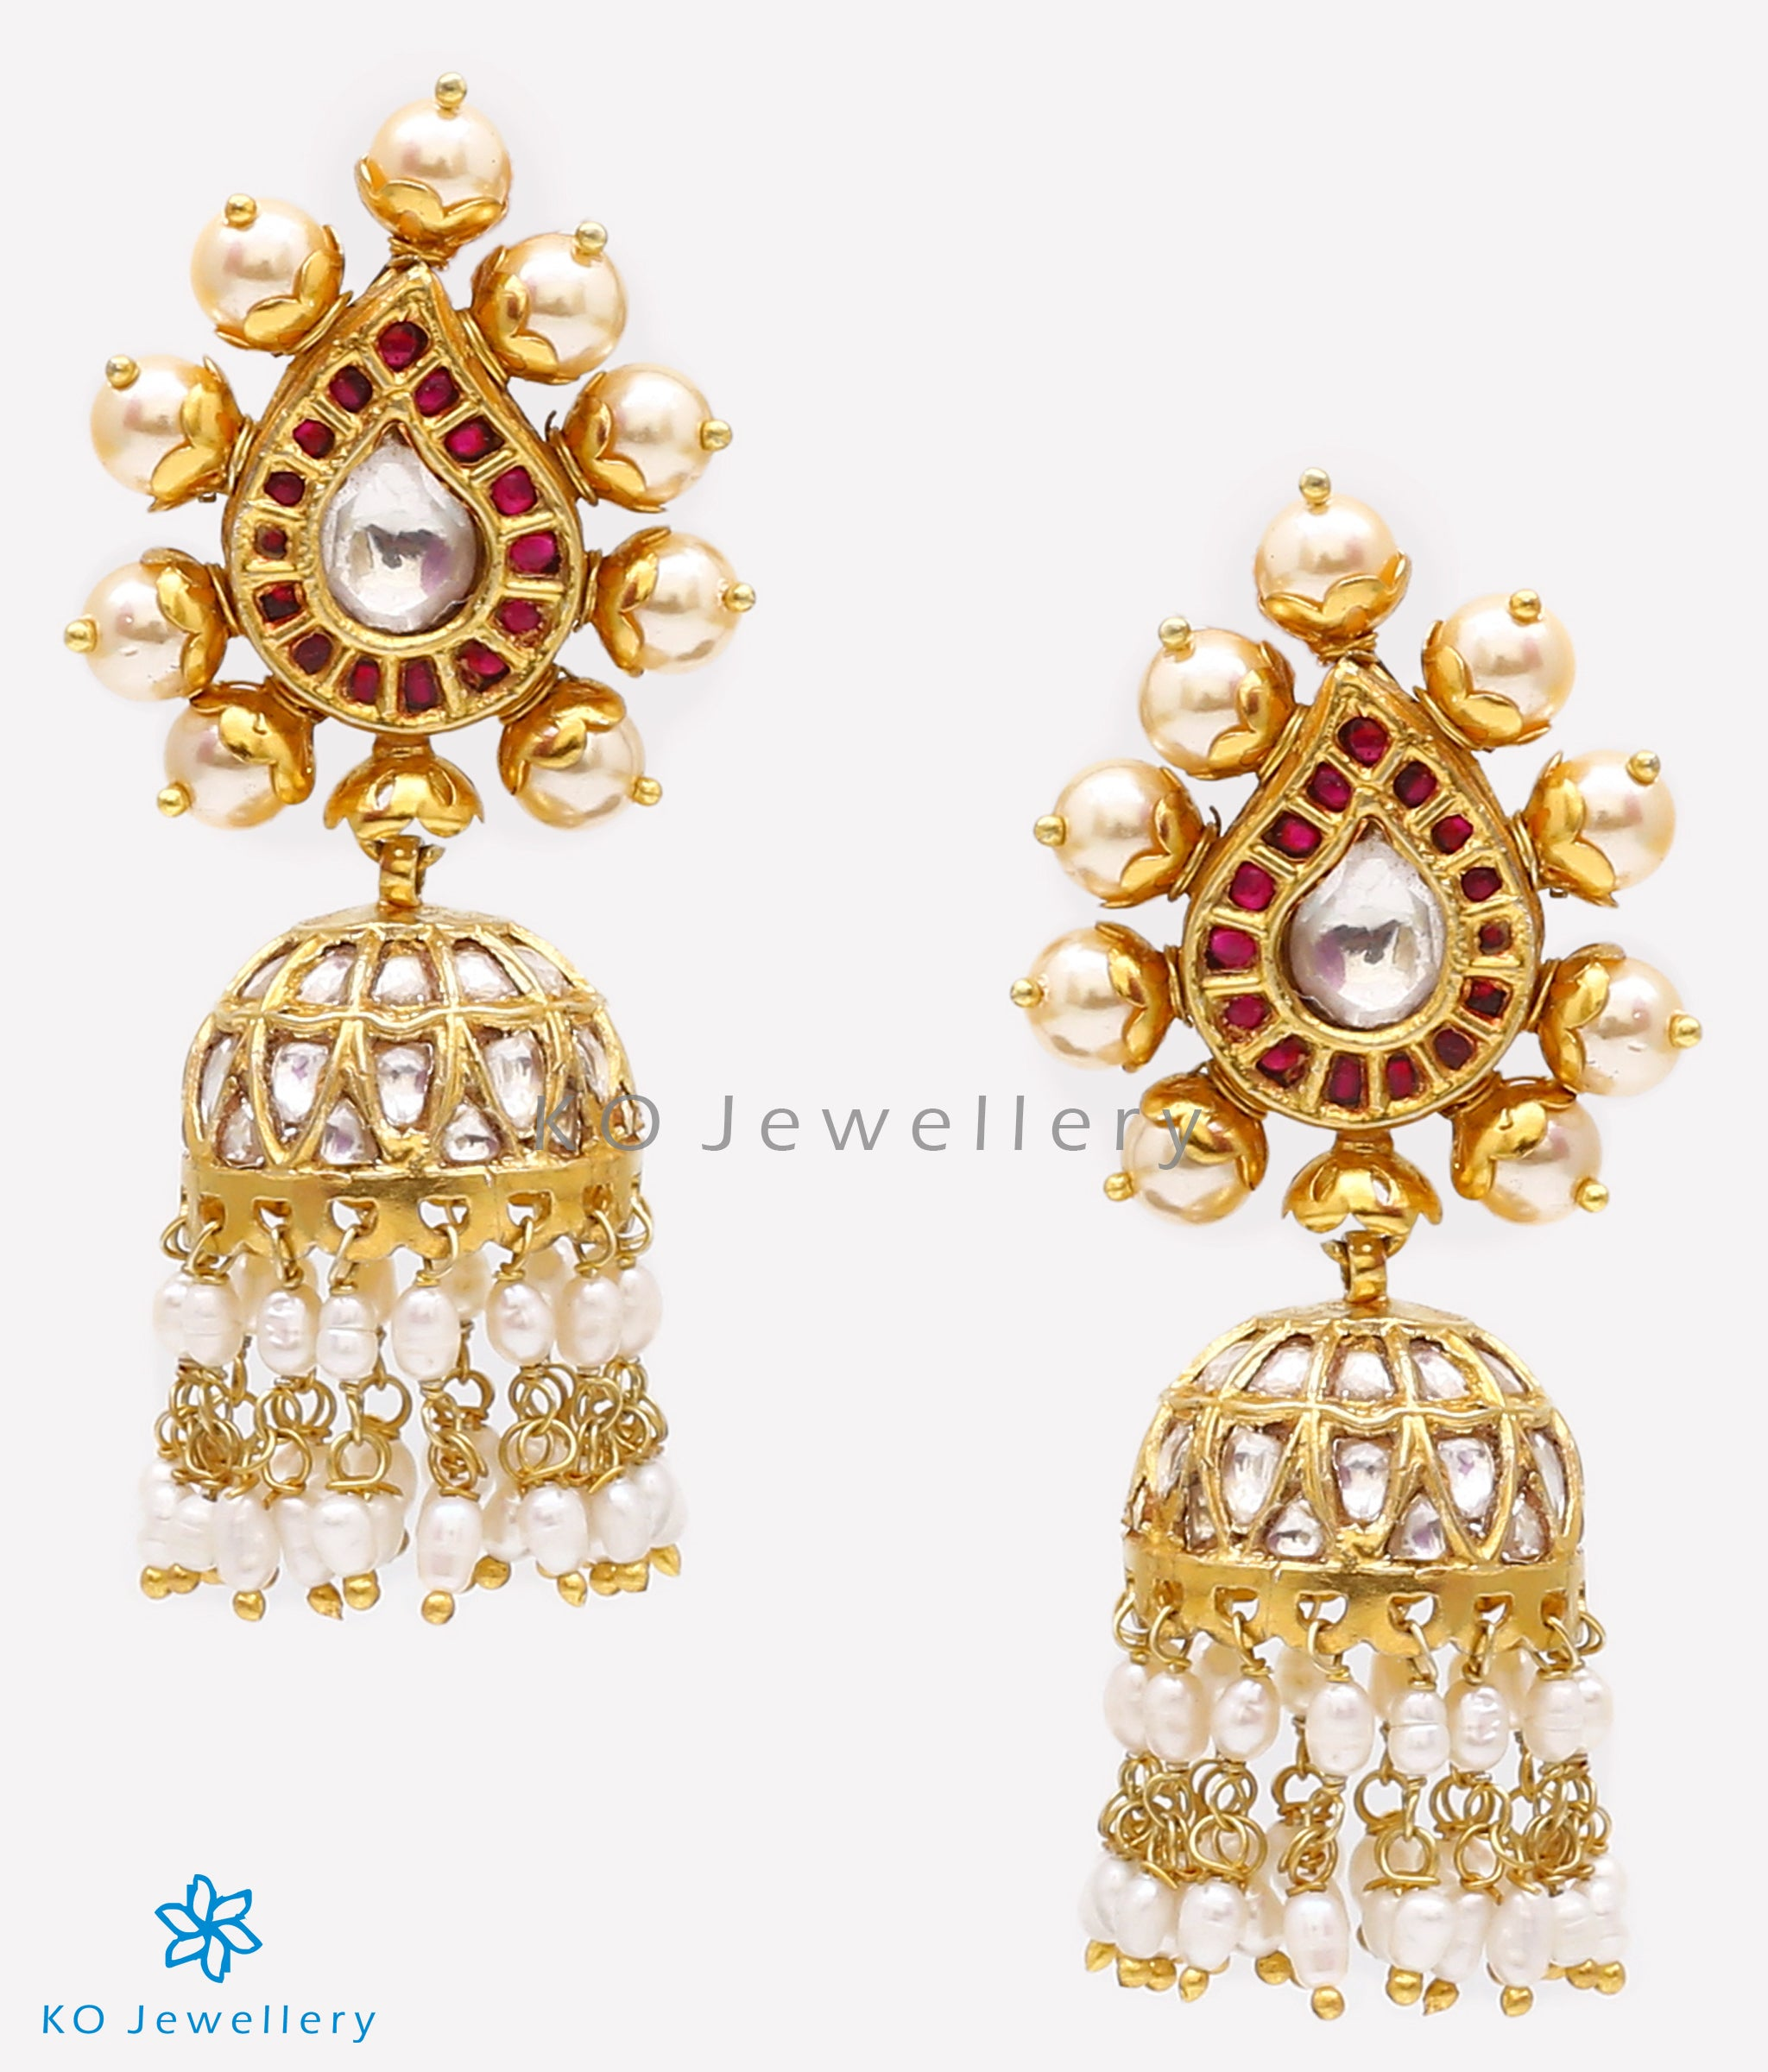 d shopping jewellery saharanpur in shop saharanpurweb